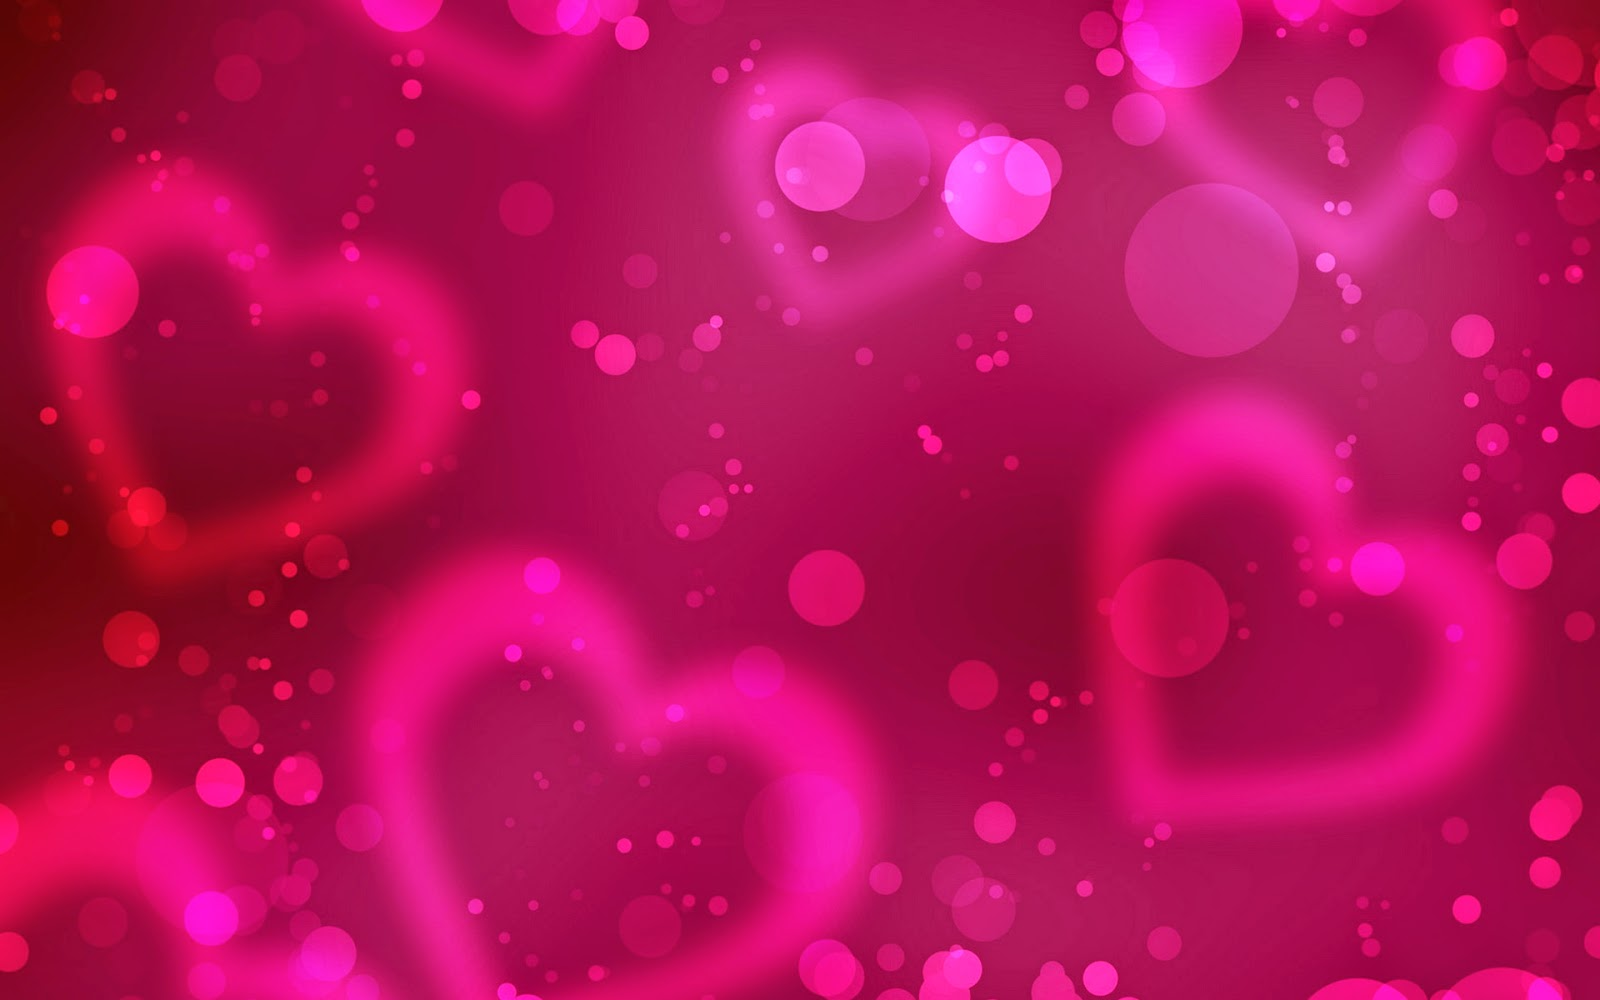 Love Theme Wallpaper In Hd : Romantic Love Heart Designs HD cover Wallpaper